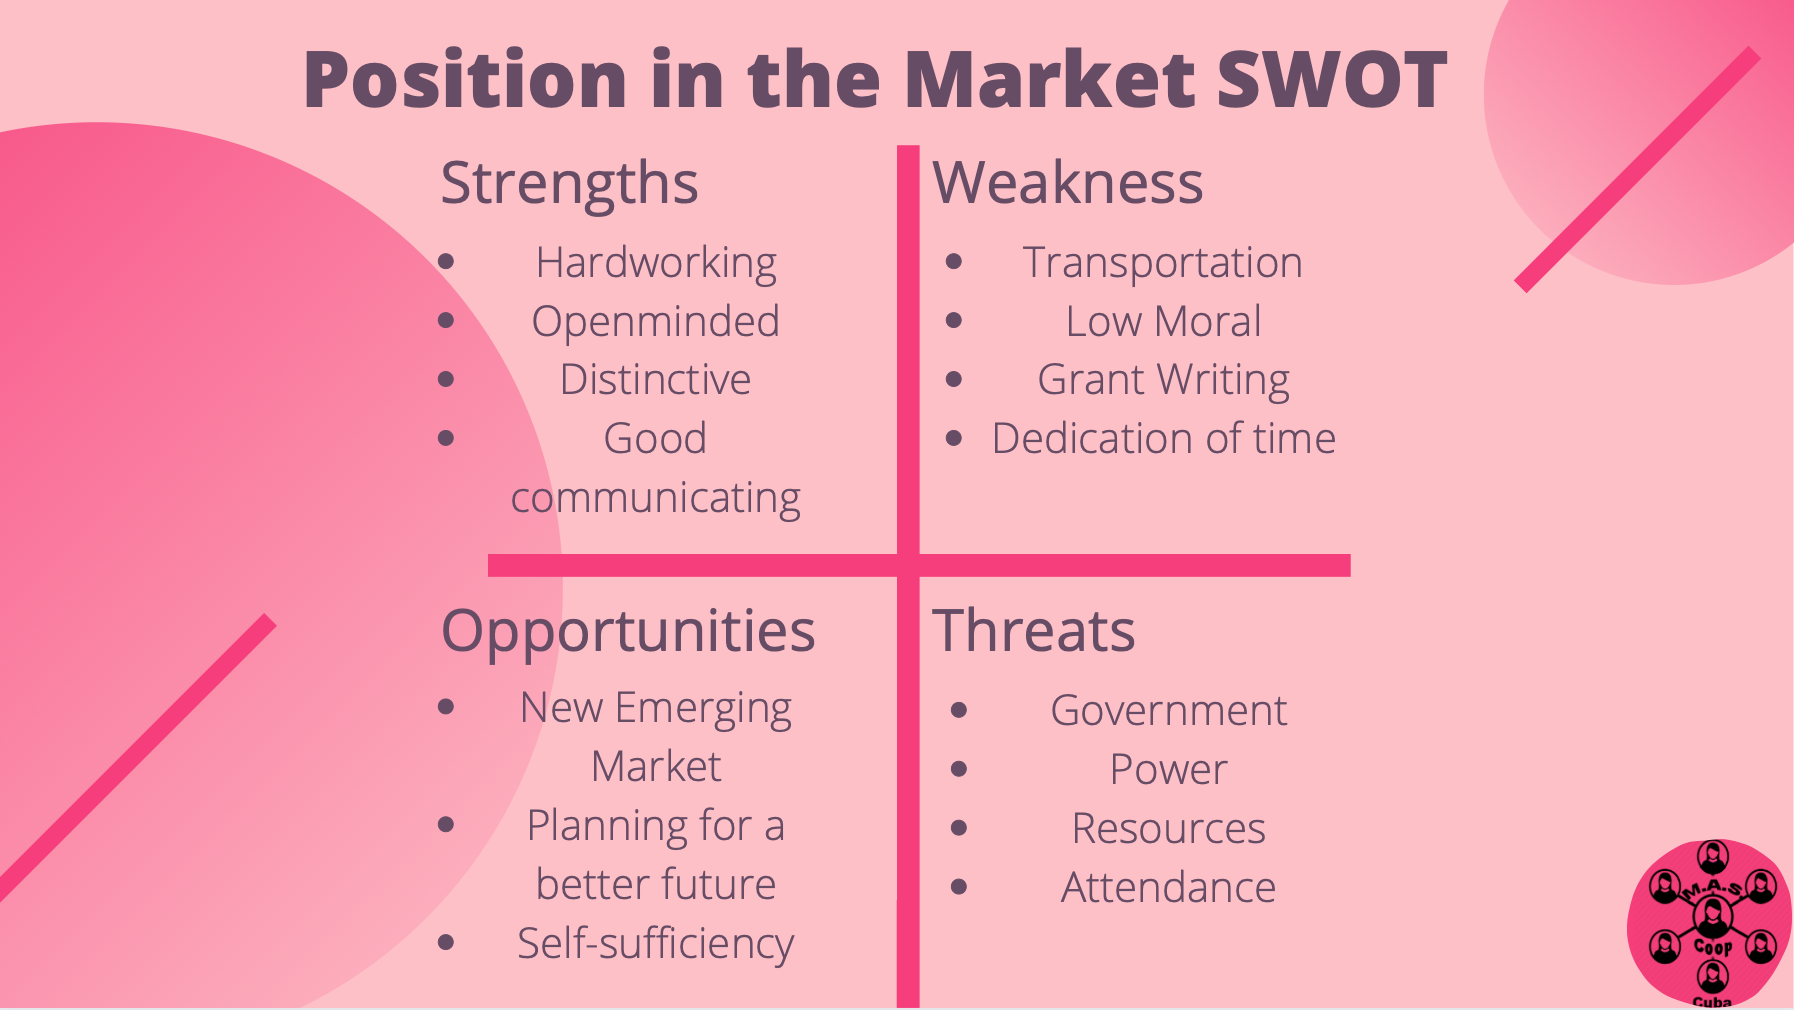 Strengths for this Coop include being distinctive and in an emerging market, a threat is resources.